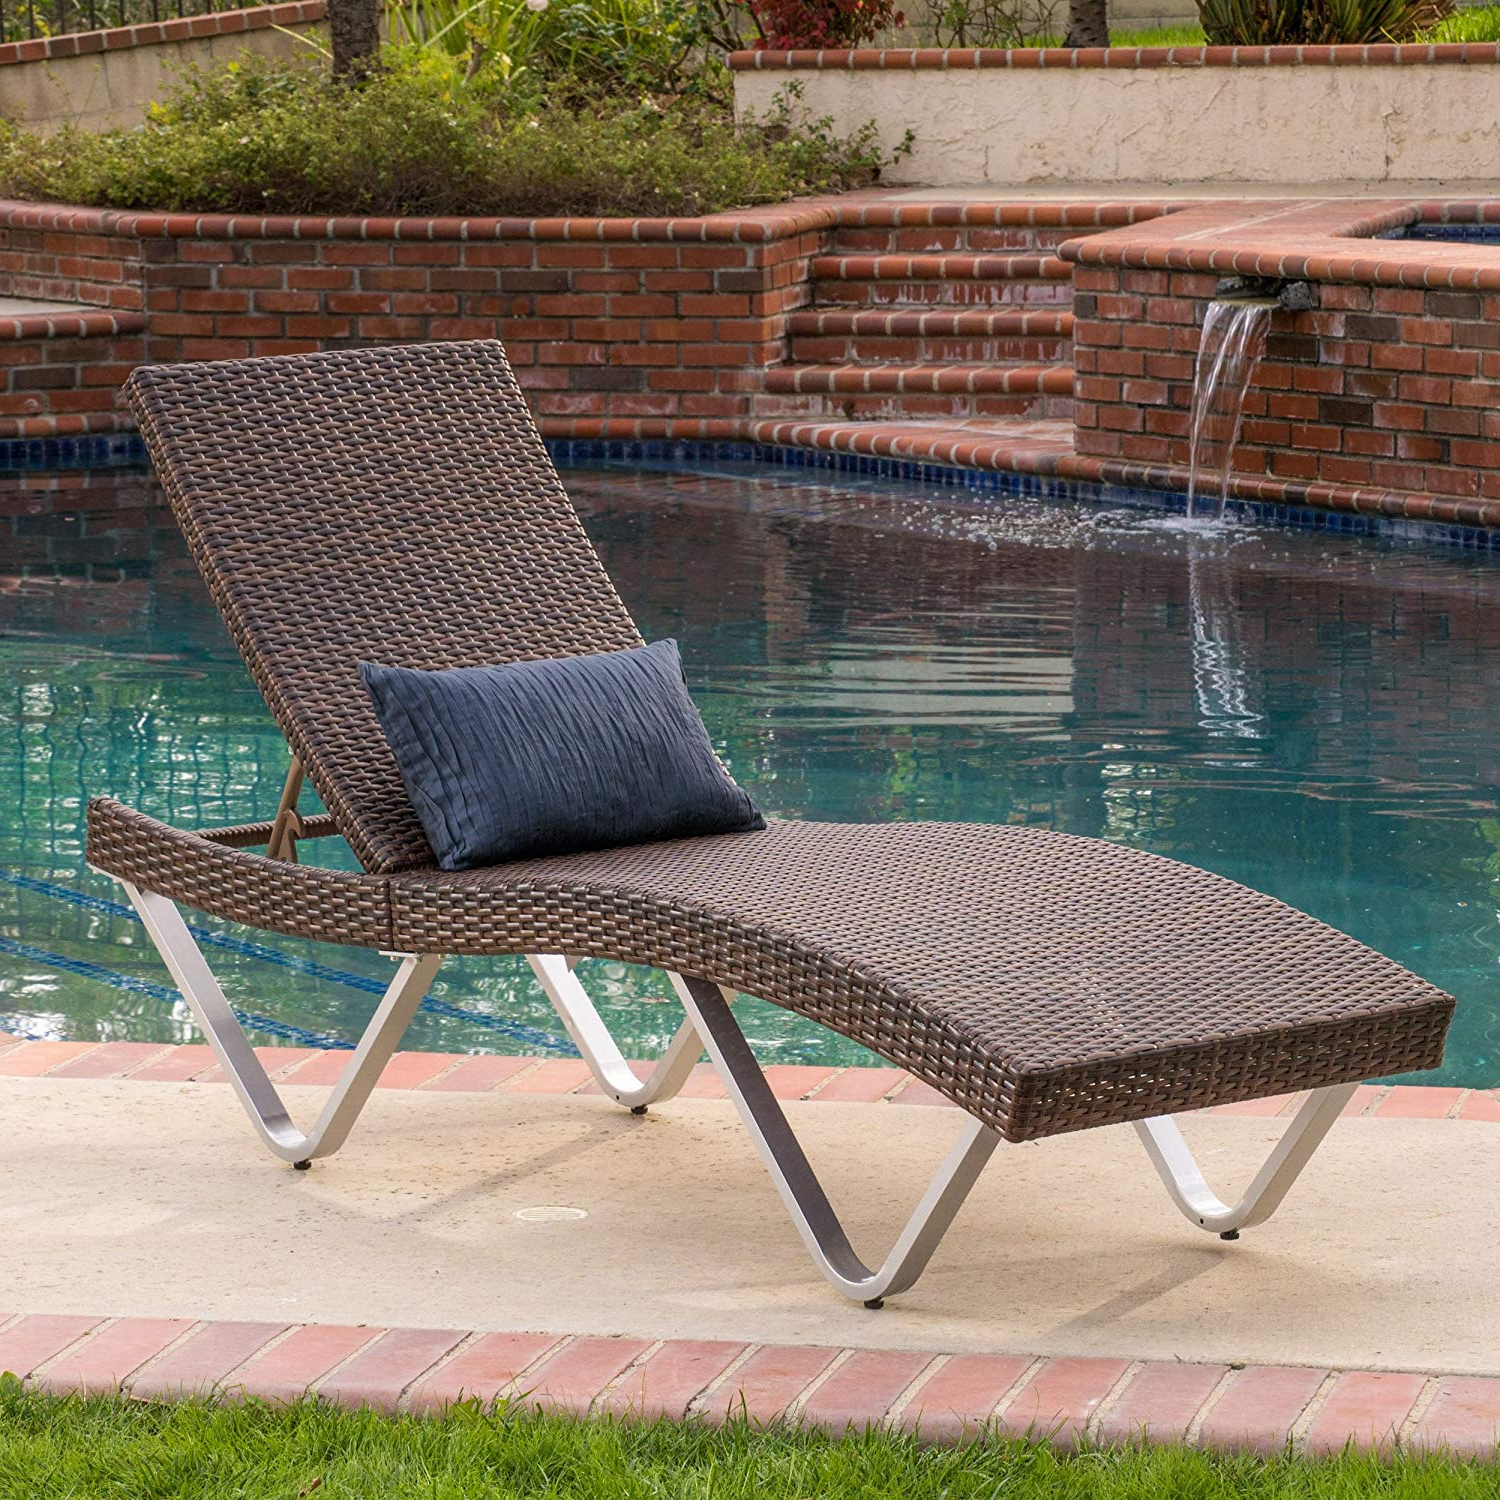 Most Current Cheap Aluminum Patio Chaise Lounge, Find Aluminum Patio In Lattice Outdoor Patio Pool Chaise Lounges With Wheels And Cushion (View 24 of 25)